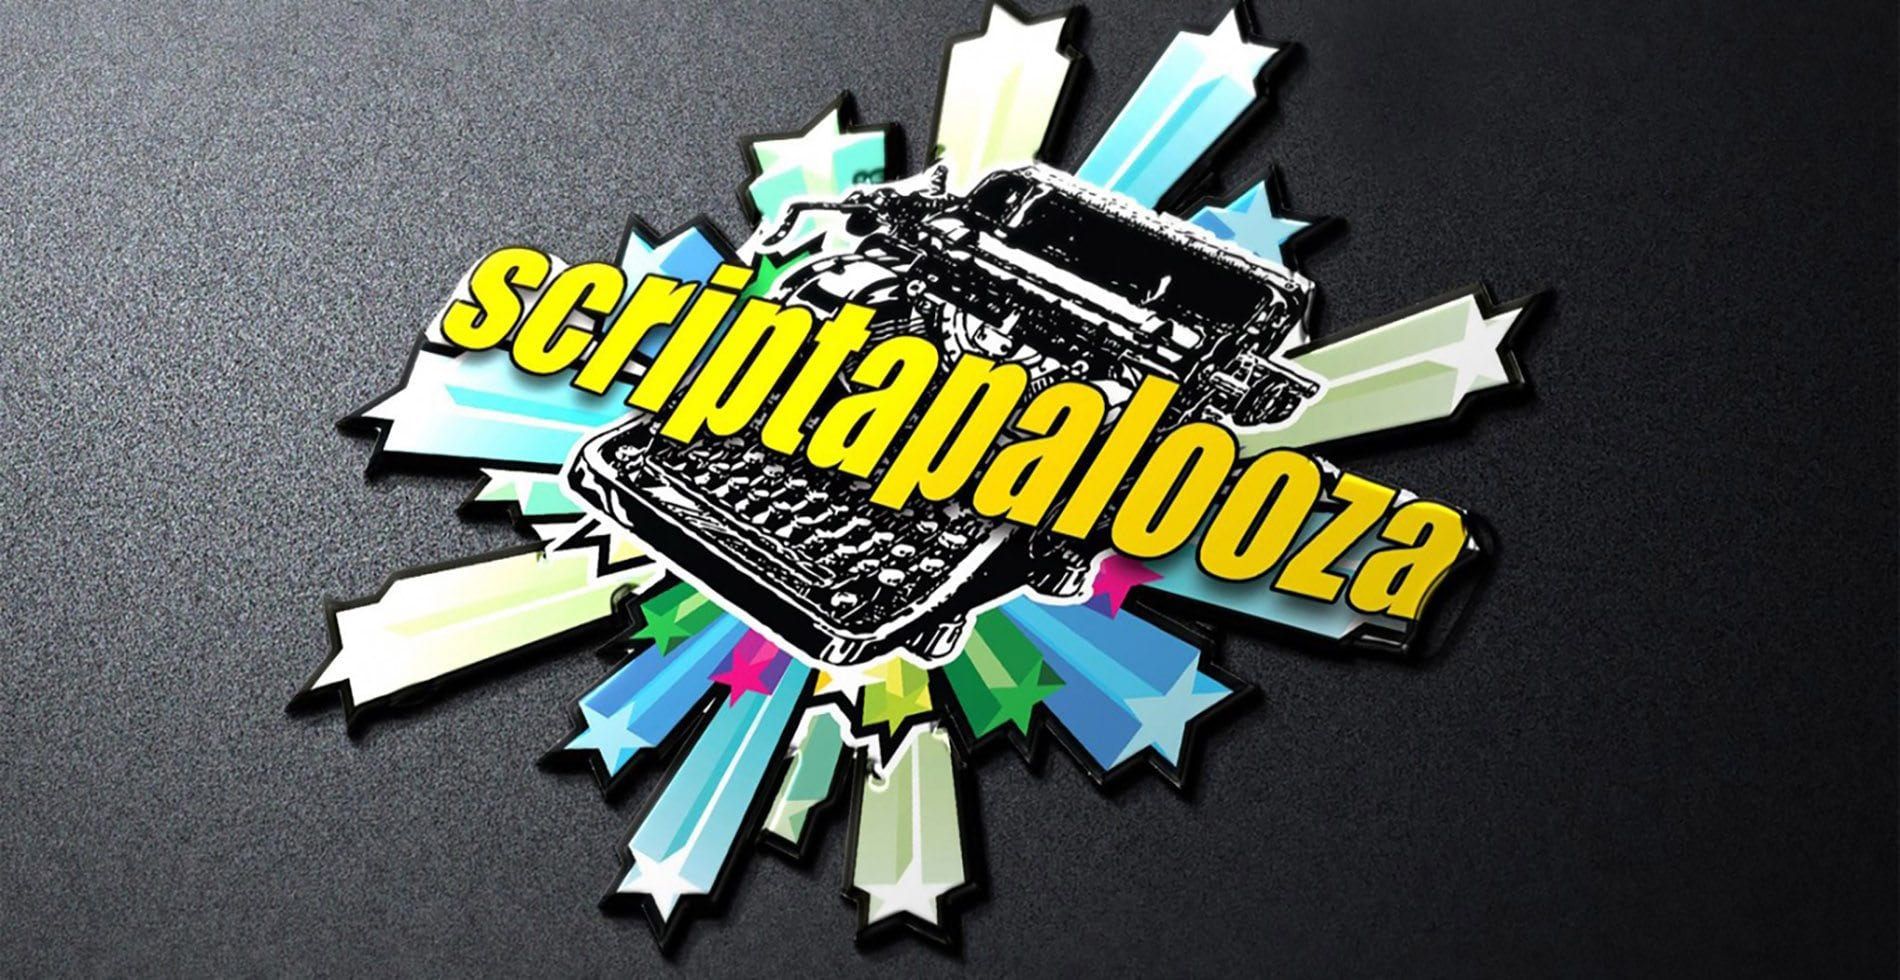 Best Fests: Get the scoop on the hottest screenwriting contests to enter this October, from Scriptapalooza TV to the Film Daily Screenwriting Contest.